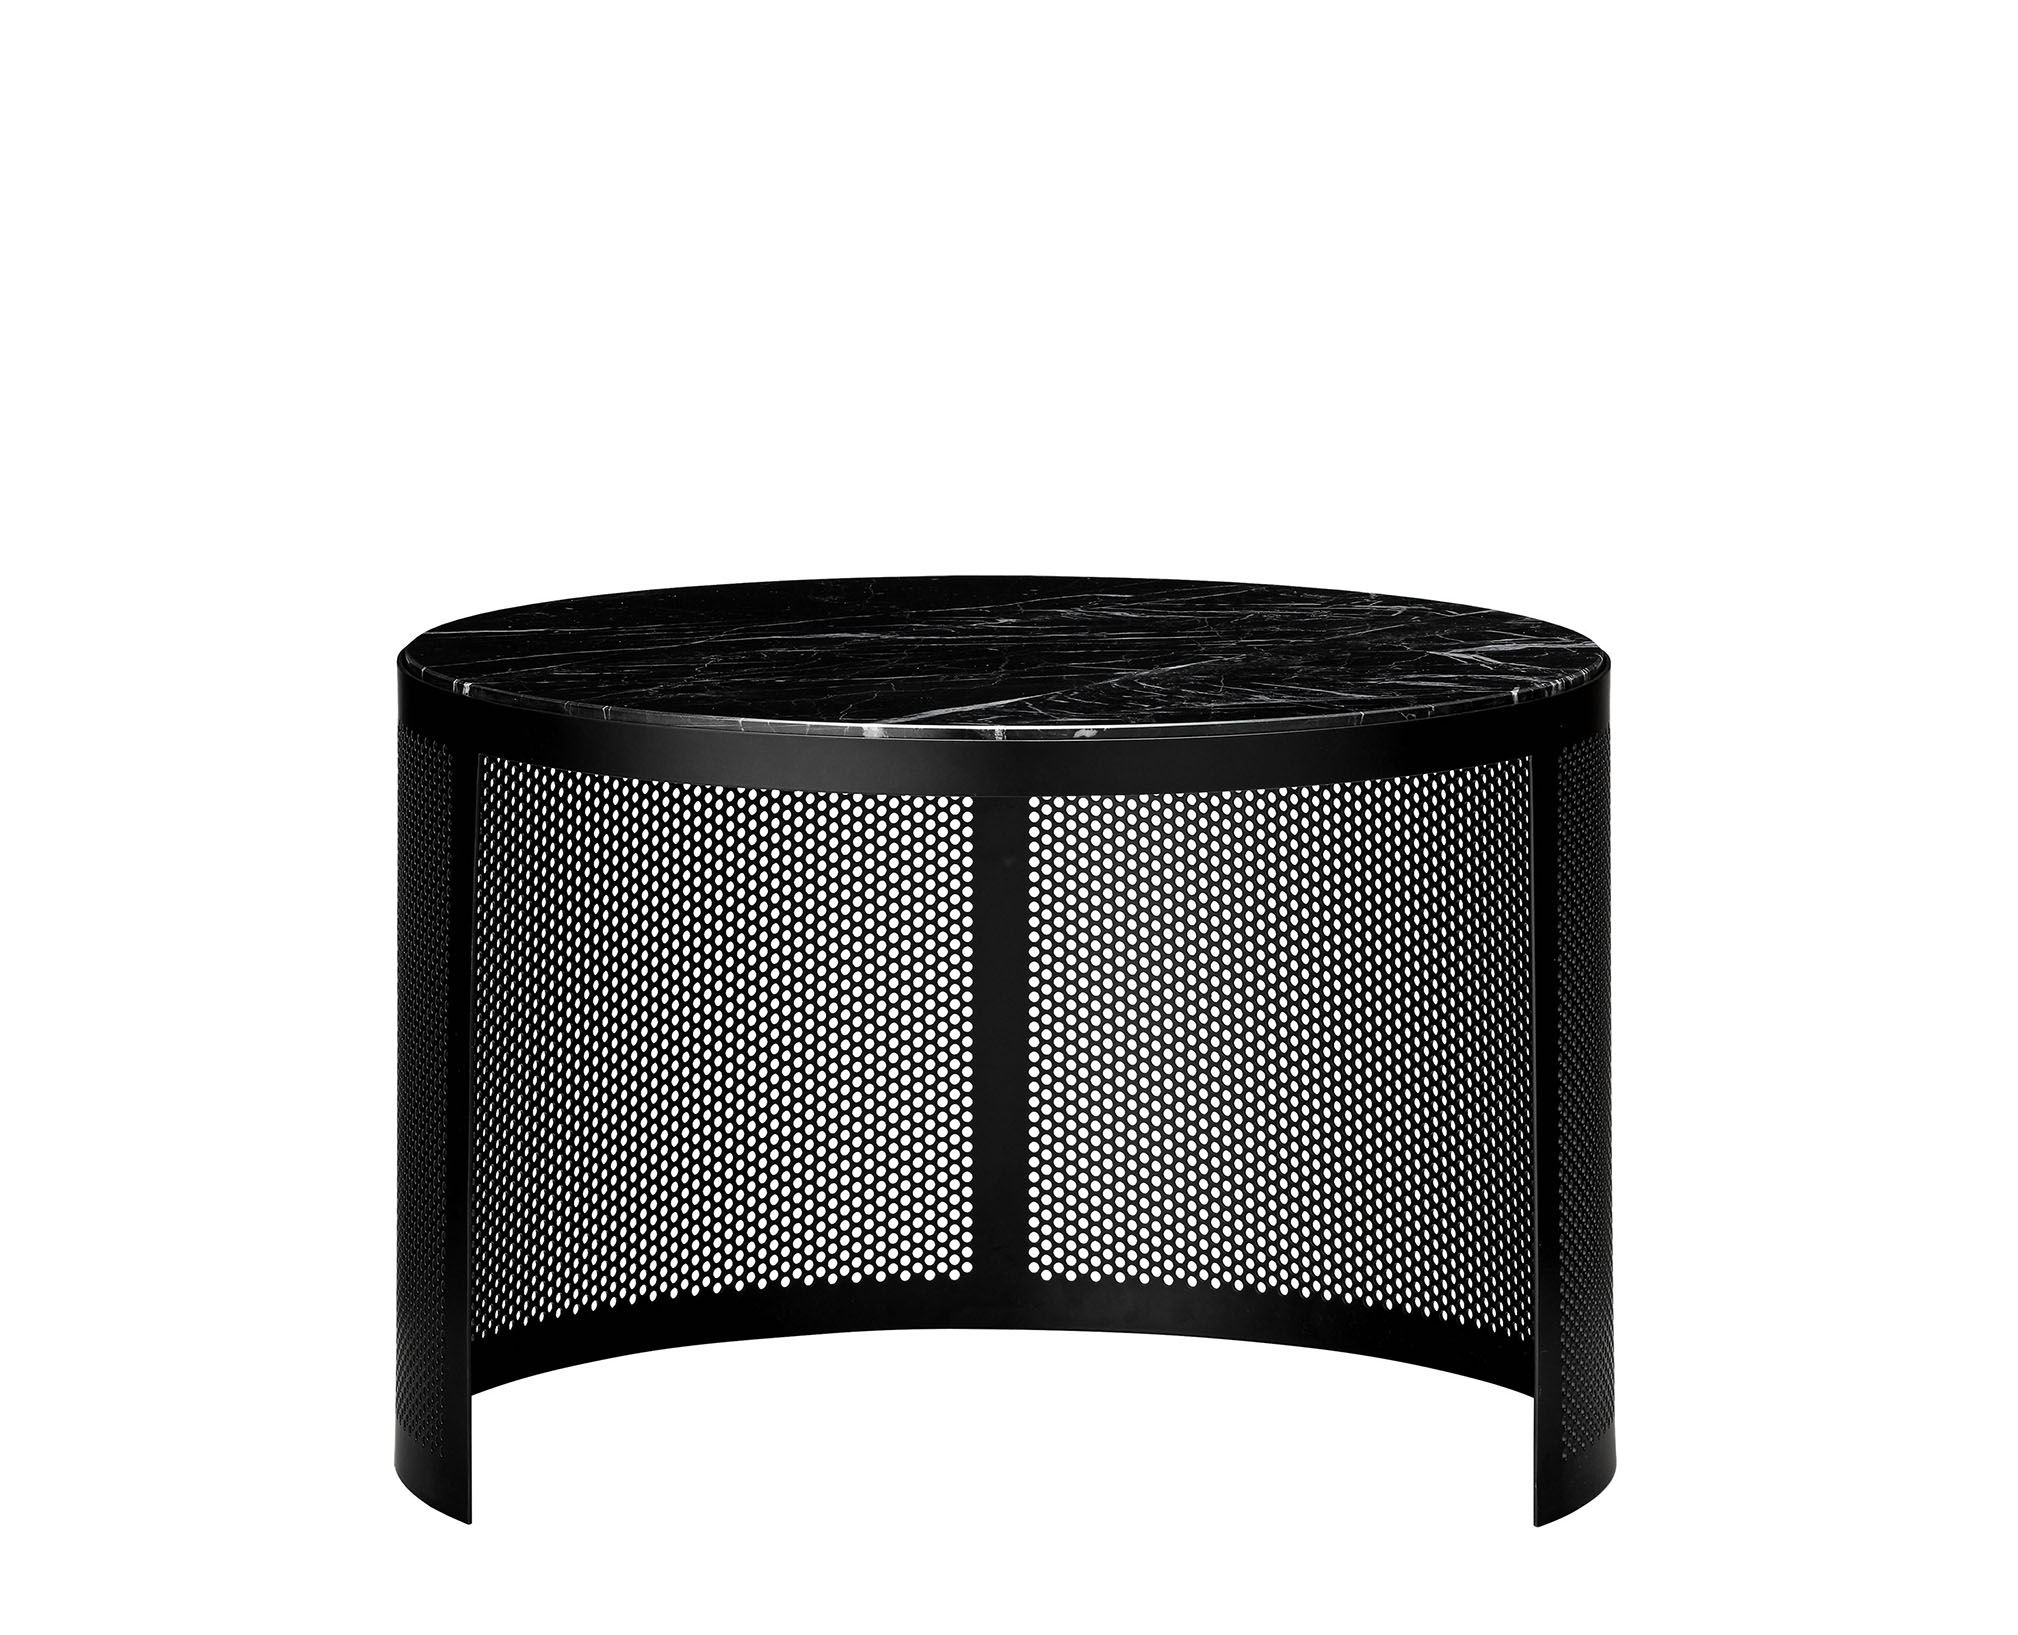 Furniture - Coffee Tables - Pausillus Small Coffee table - / Perforated metal & marble by AYTM - Small / Black - Fer peint perforé, Marble